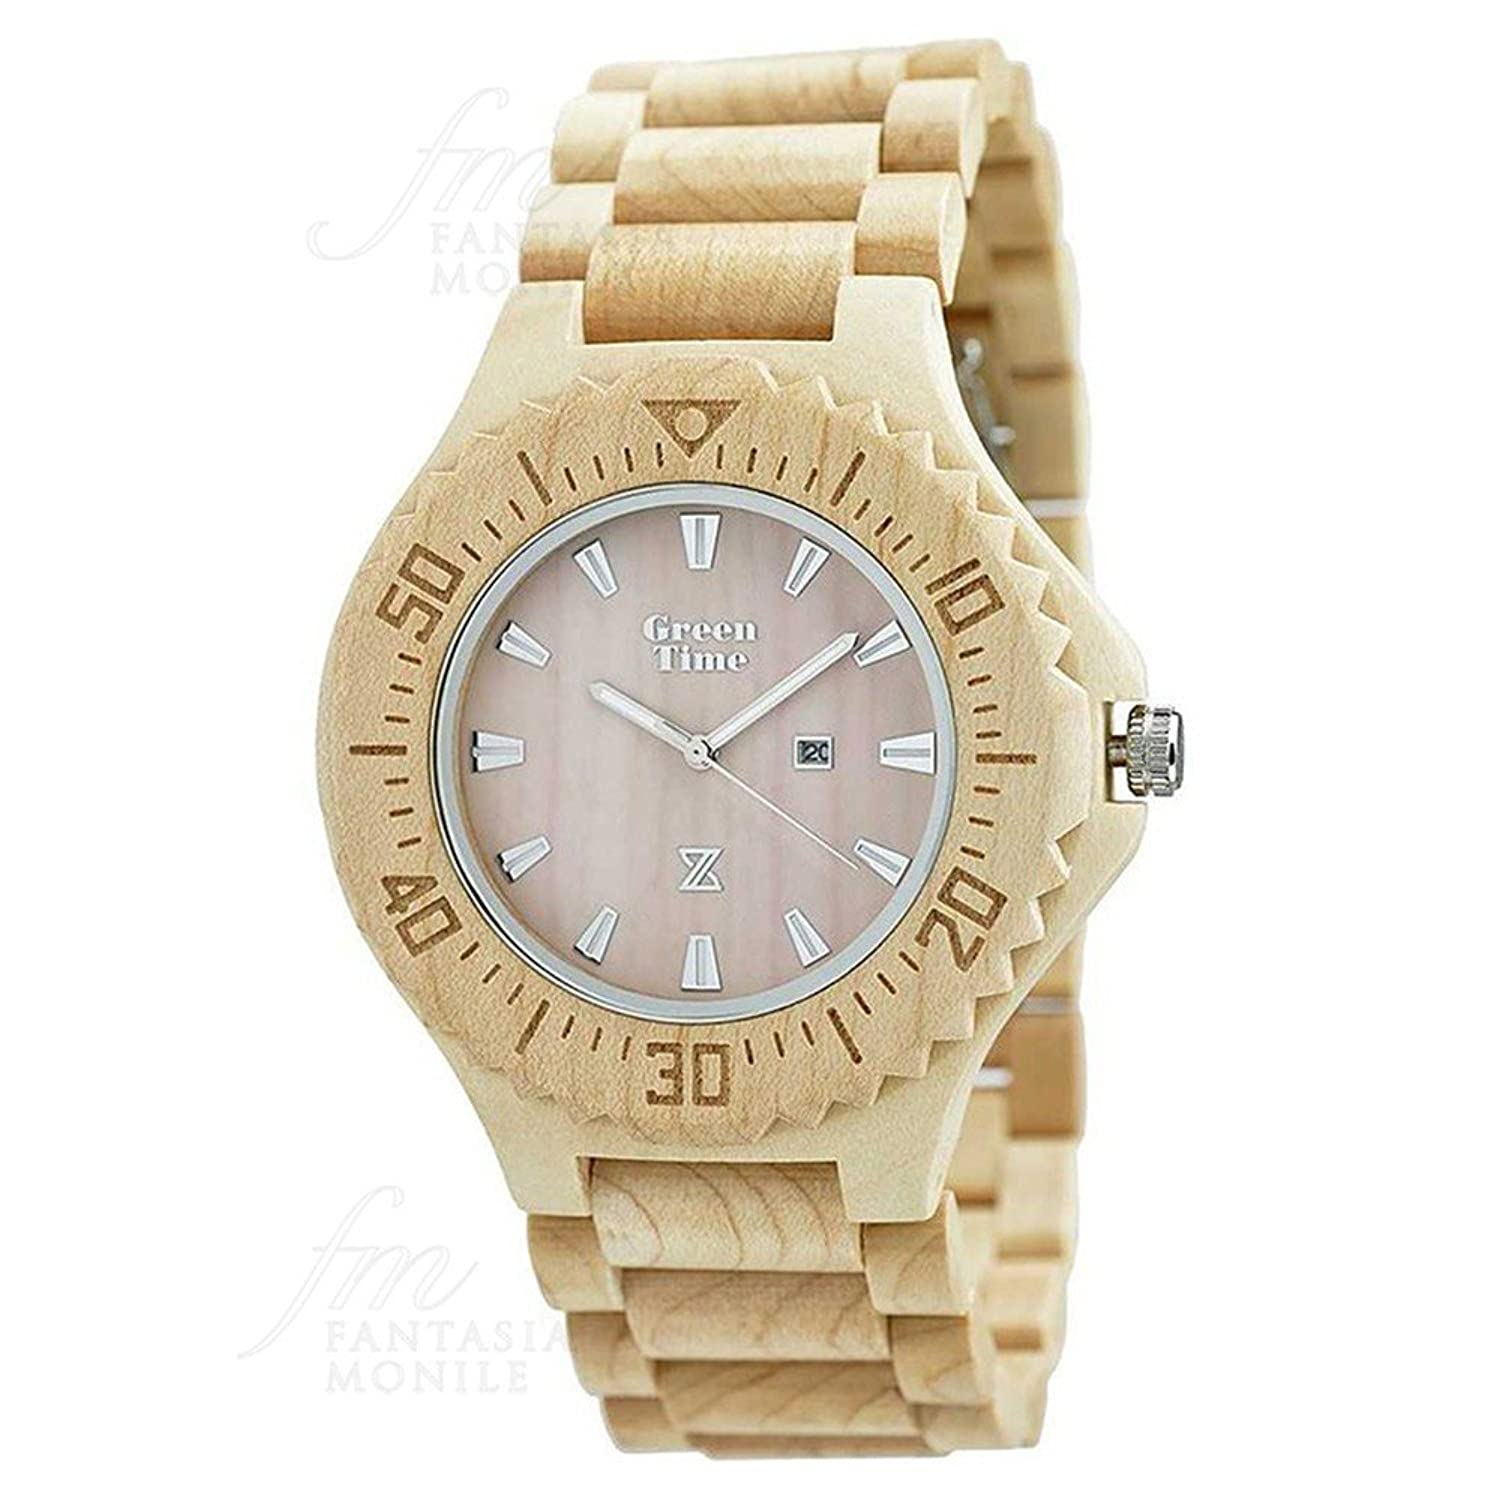 Uhr Green Time Herren Holz Ahorn Wood zw001b